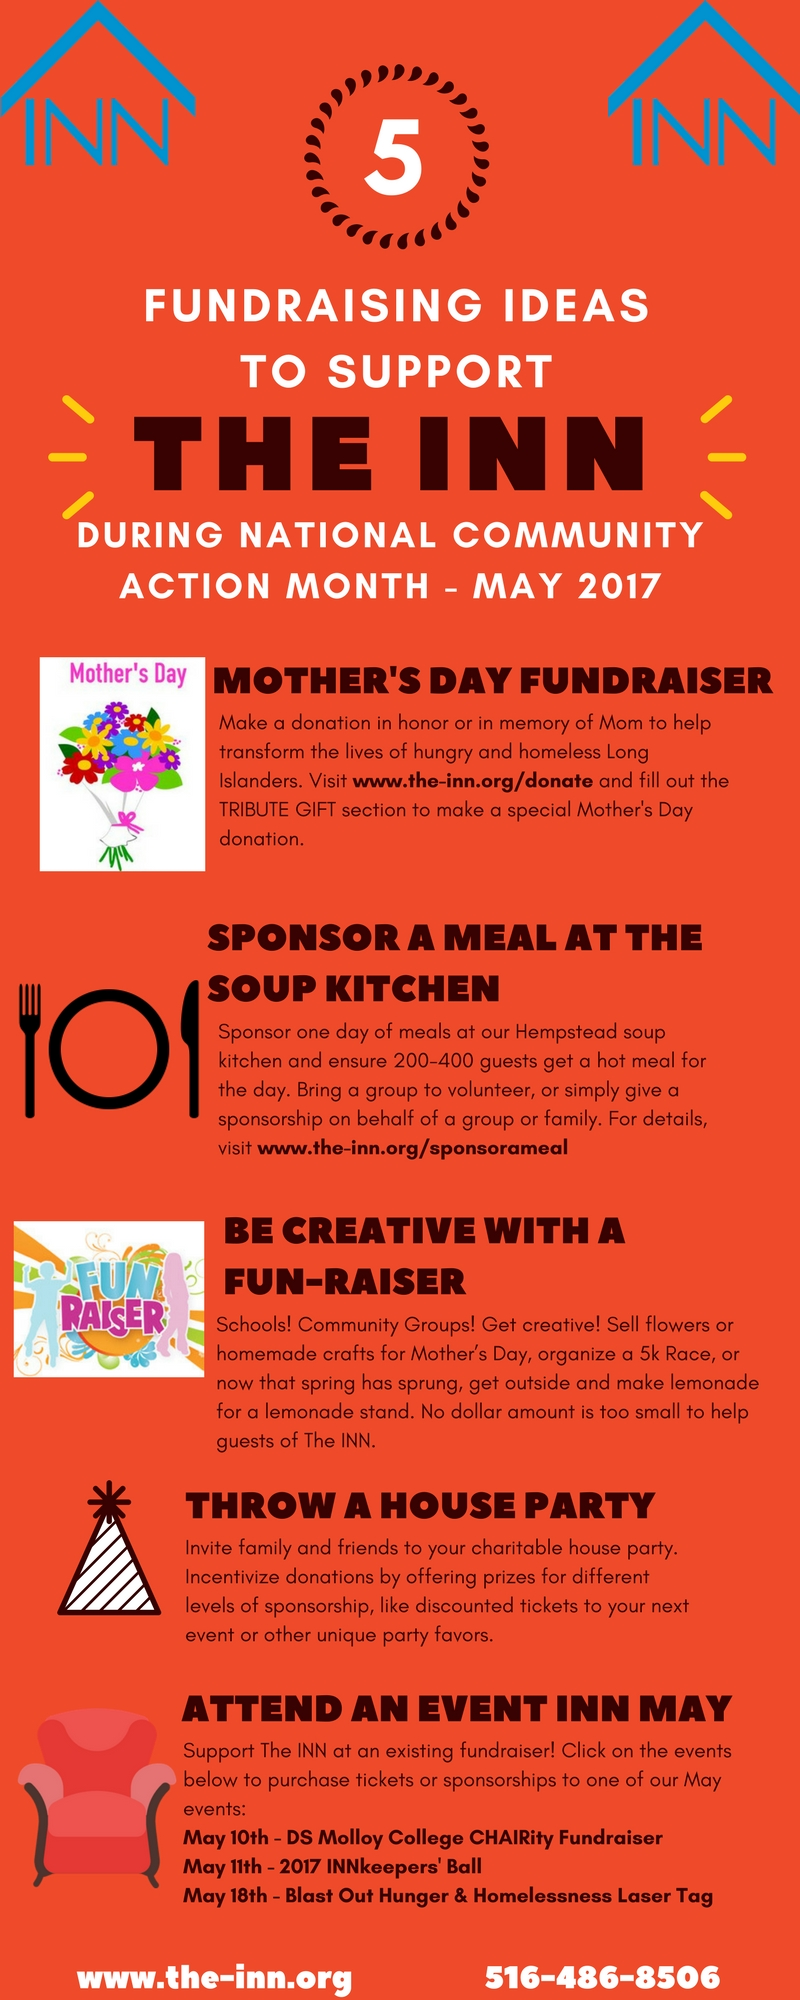 10 Lovely Fundraiser Ideas For Small Groups fundraising ideas for national community action month the inn 2020